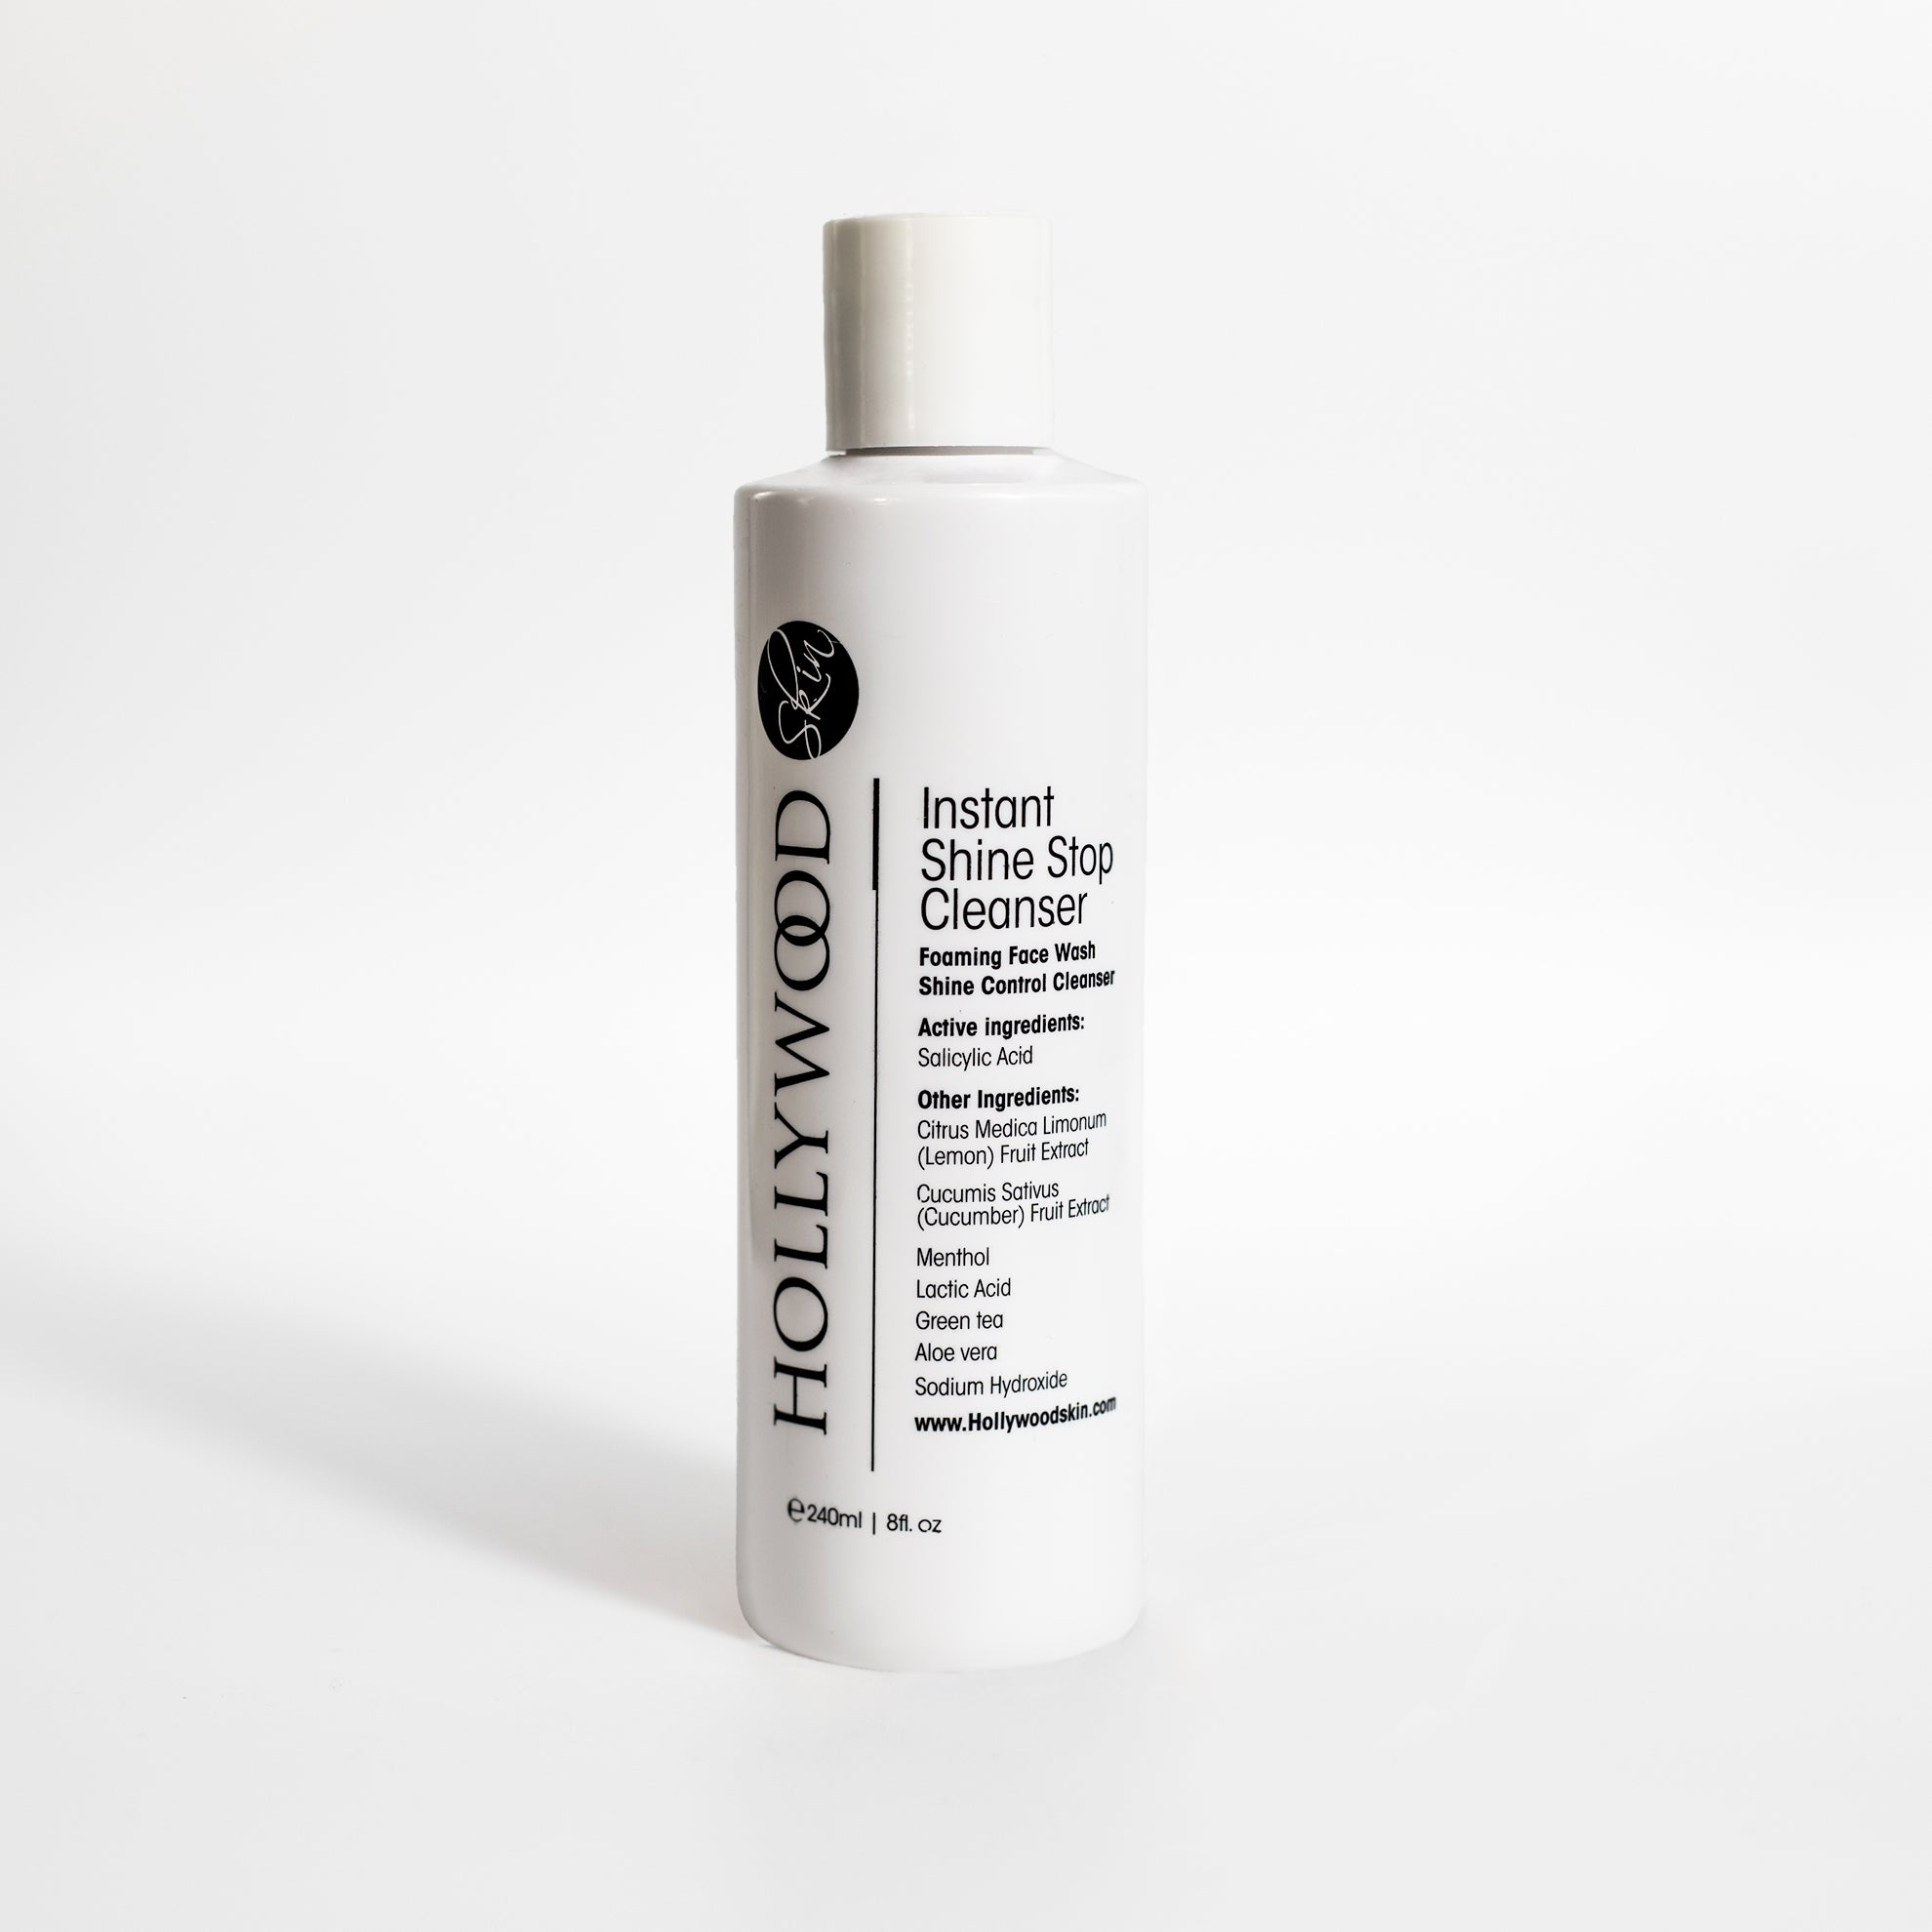 Instant Shine Stop Cleanser